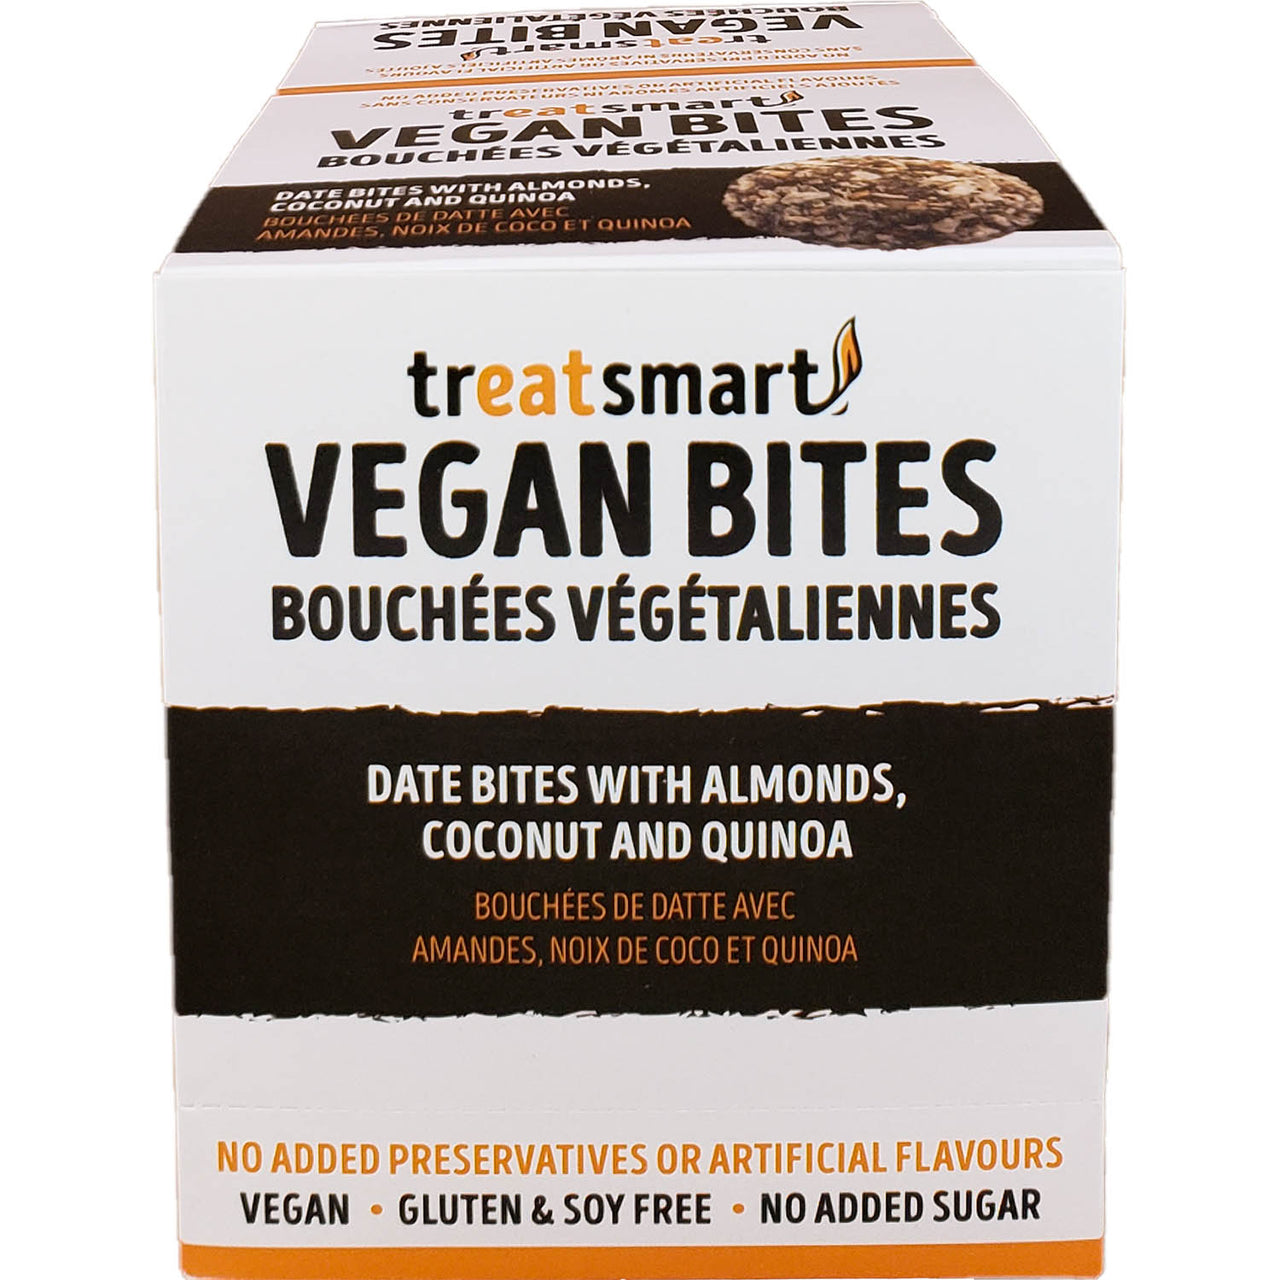 TreatSmart Grab and Go Vegan Date Bites Snacks [8-Pack], Nov Promo - 20% Off